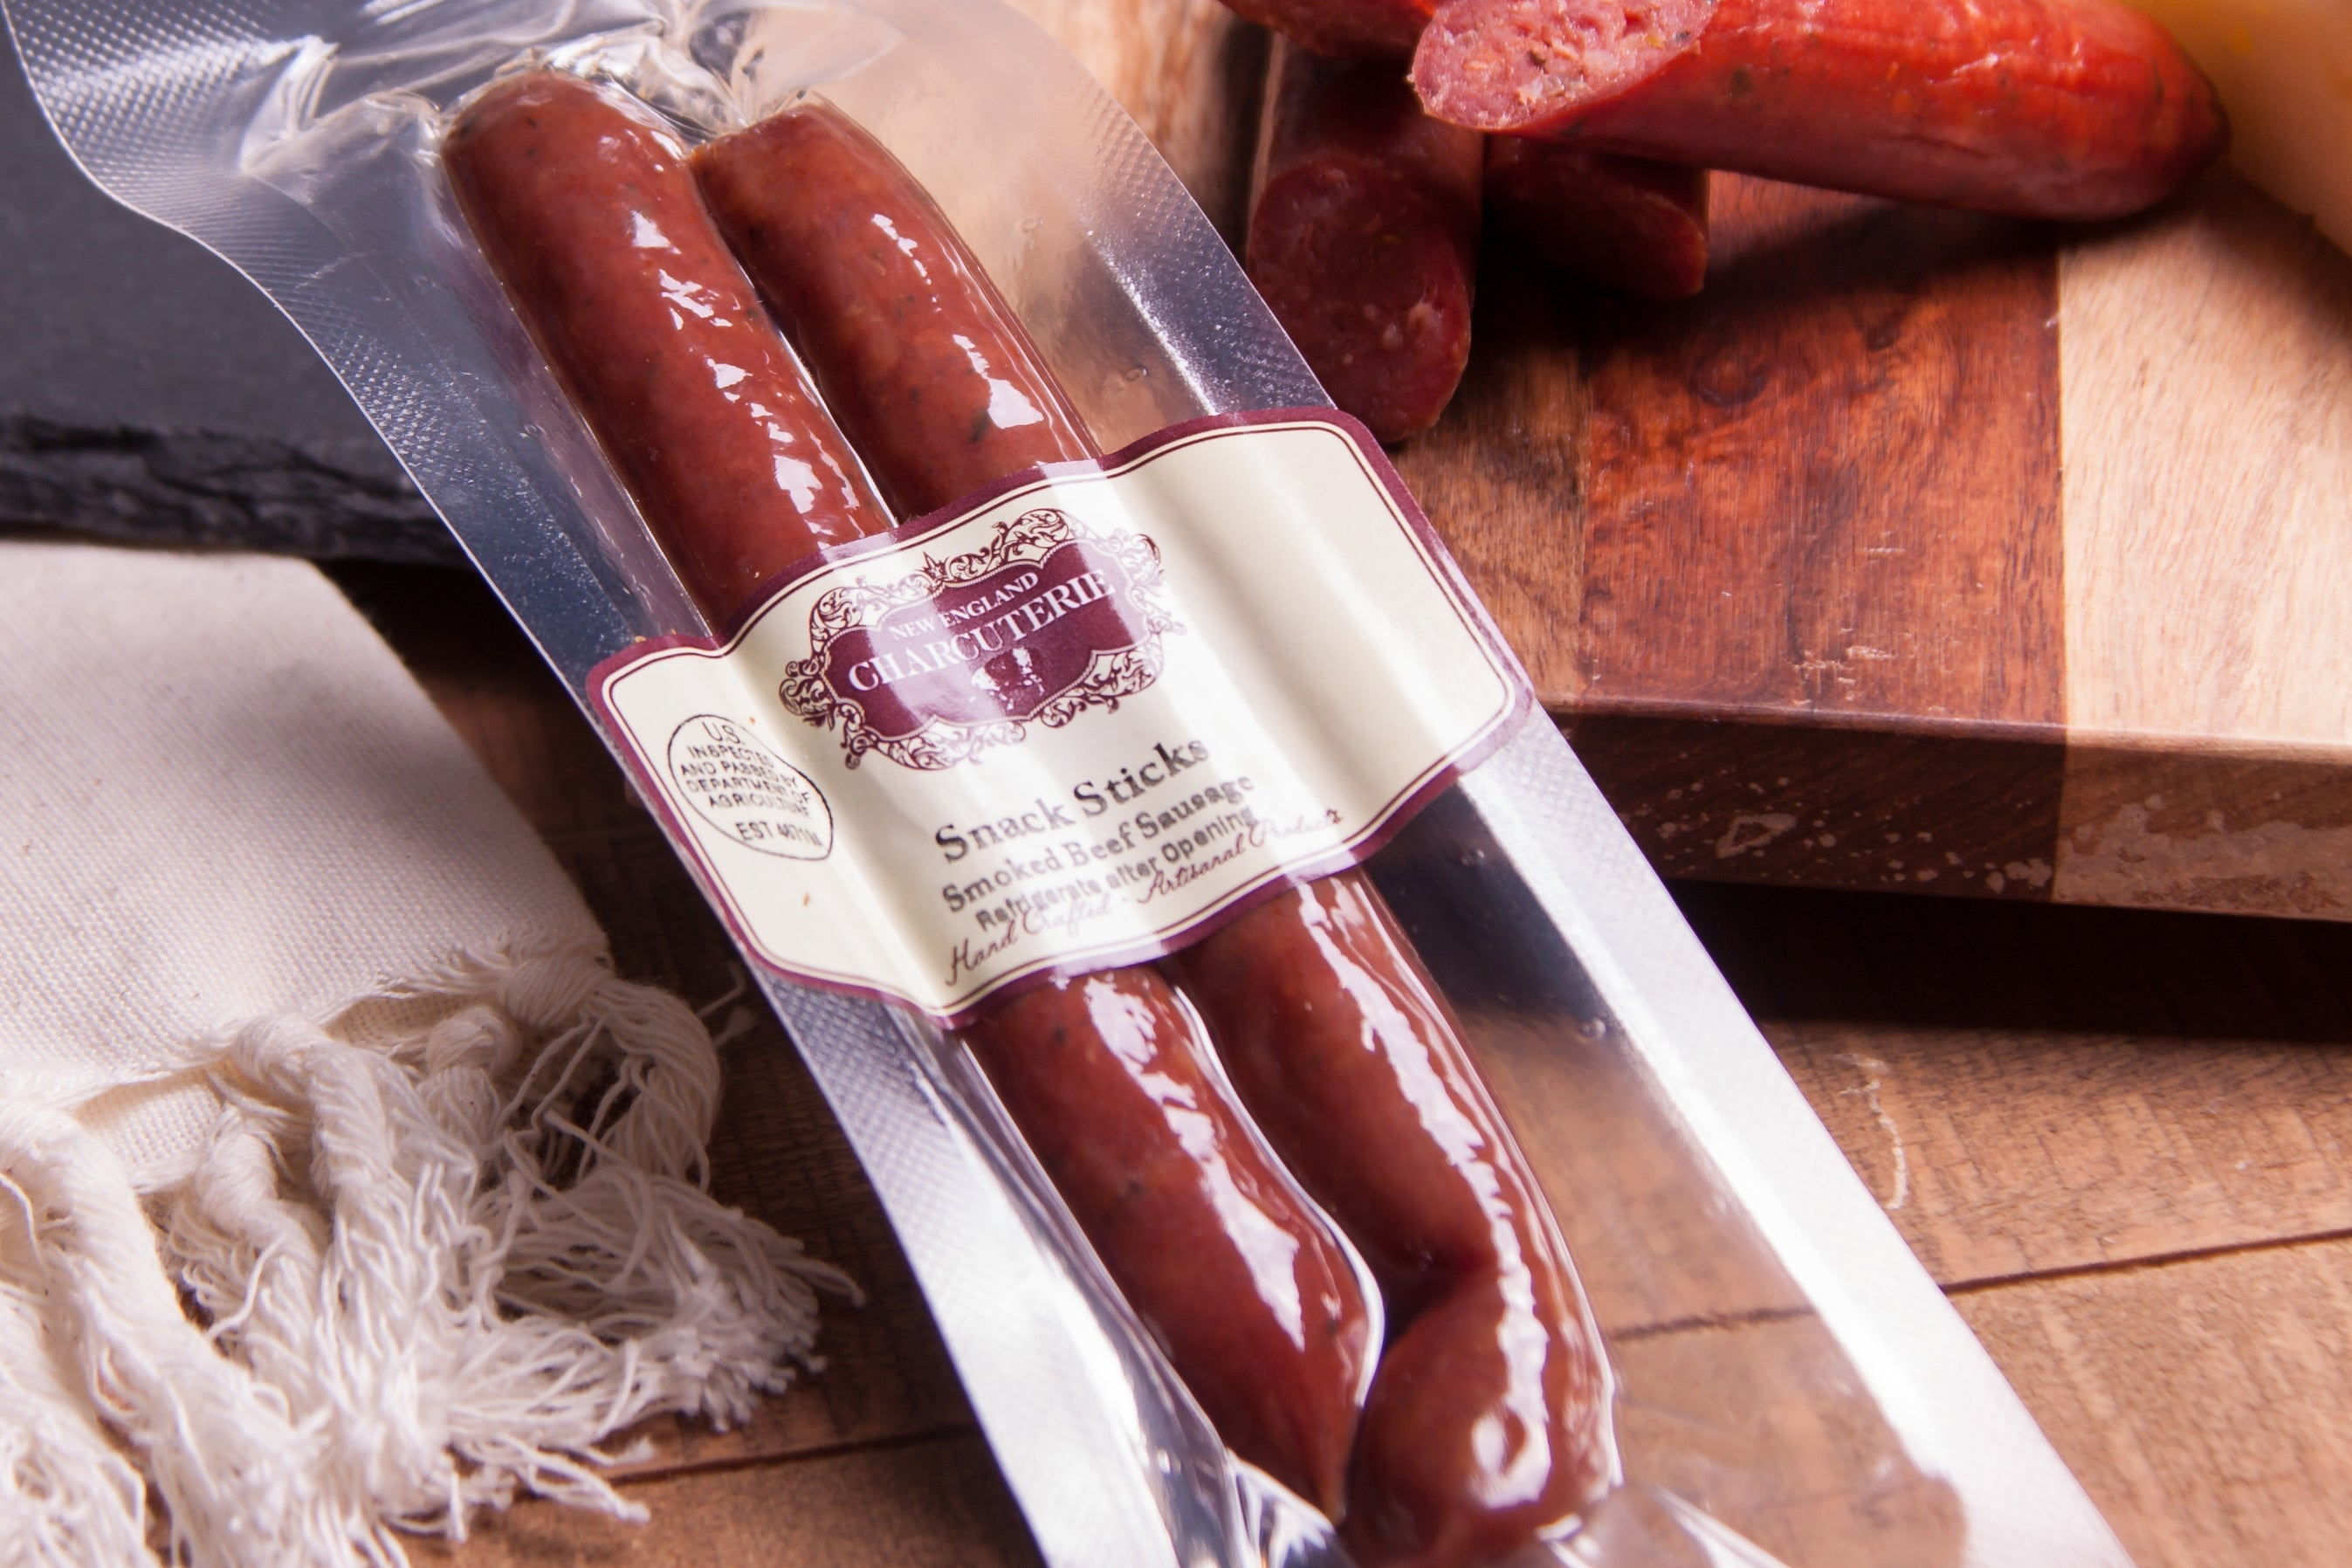 <a target='_blank' href='https://www.moodyswaltham.com/online-store/New-England-Charcuterie-Snack-Sticks-p89639495'> <b>New England Charcuterie Snack Sticks</b></a><br>